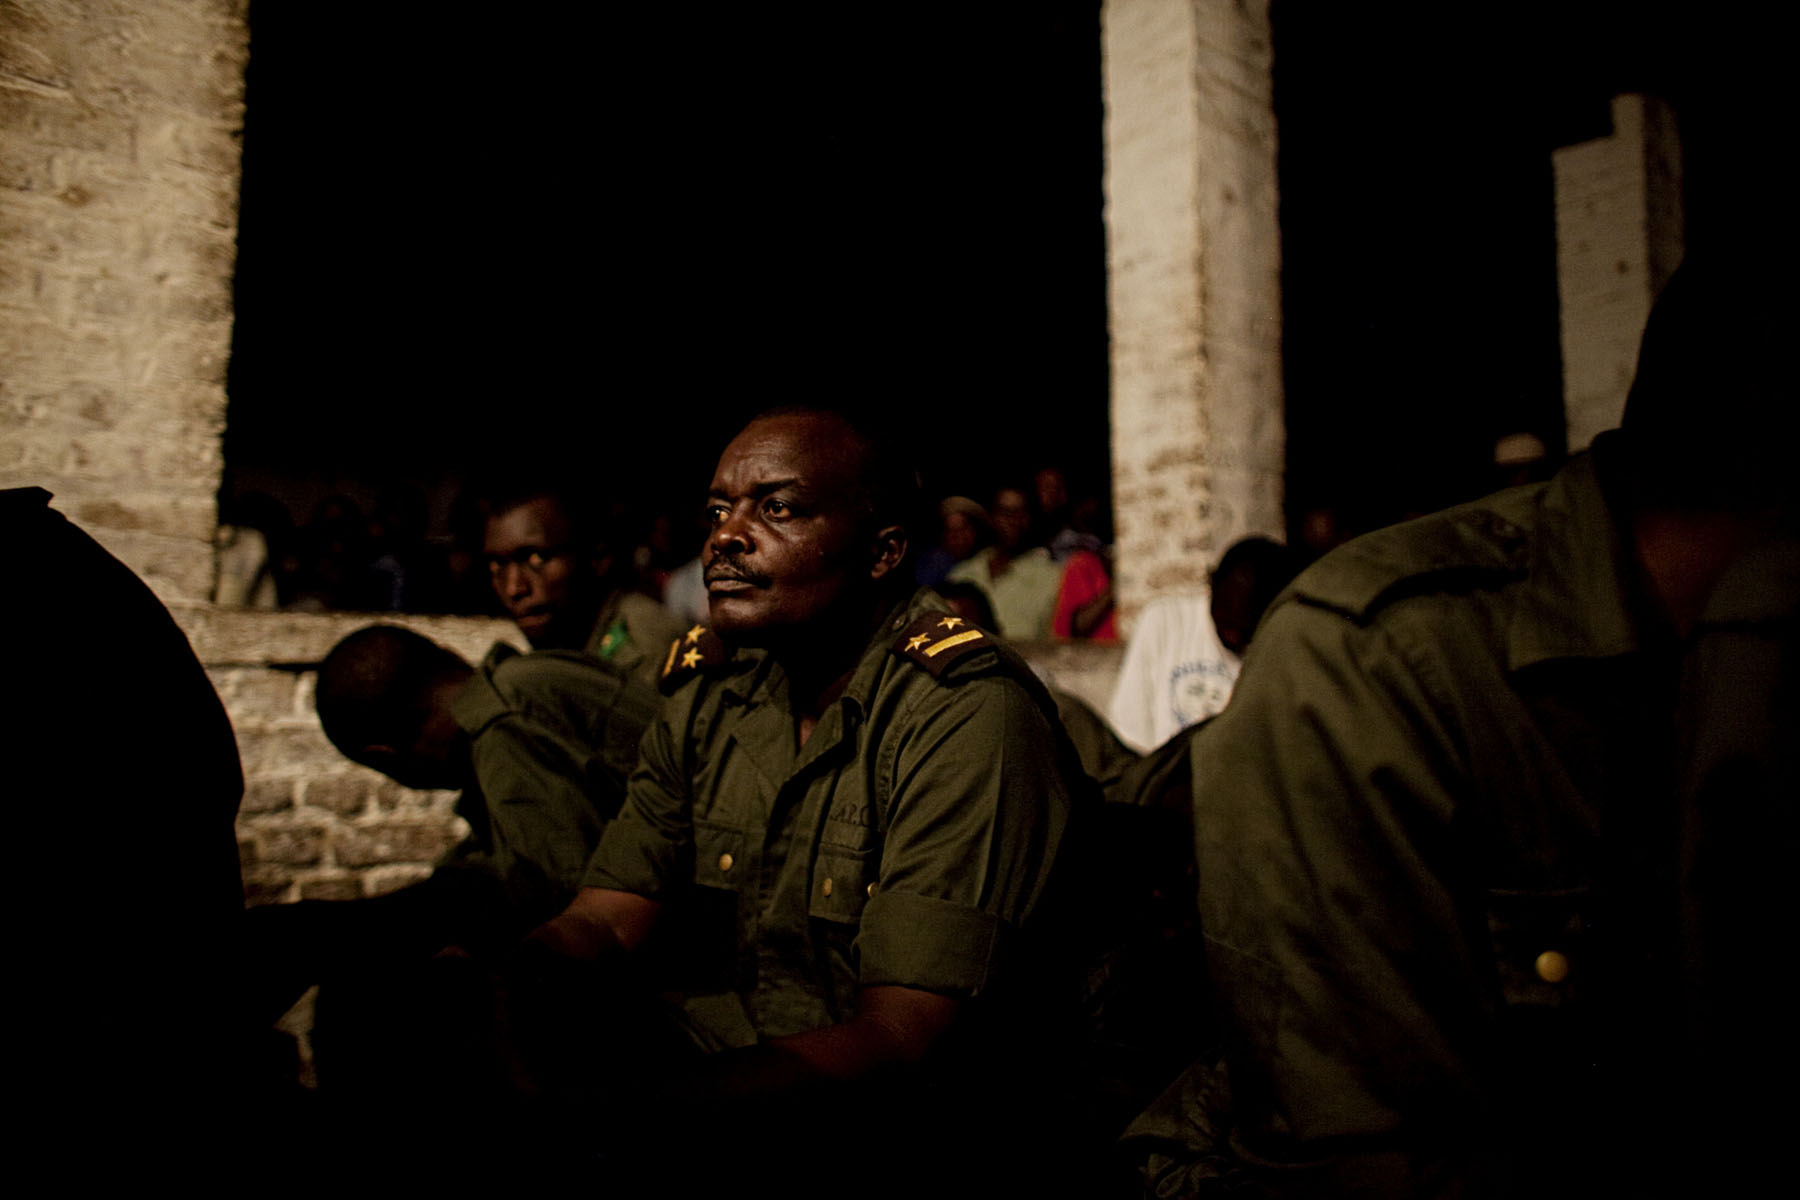 Lt. Col. Kebibi listens to arguments against him during a late night session of his trial. While this was his first trial, many indicate that Kebibi has been involved in numerous instances of rape and killing in the past.